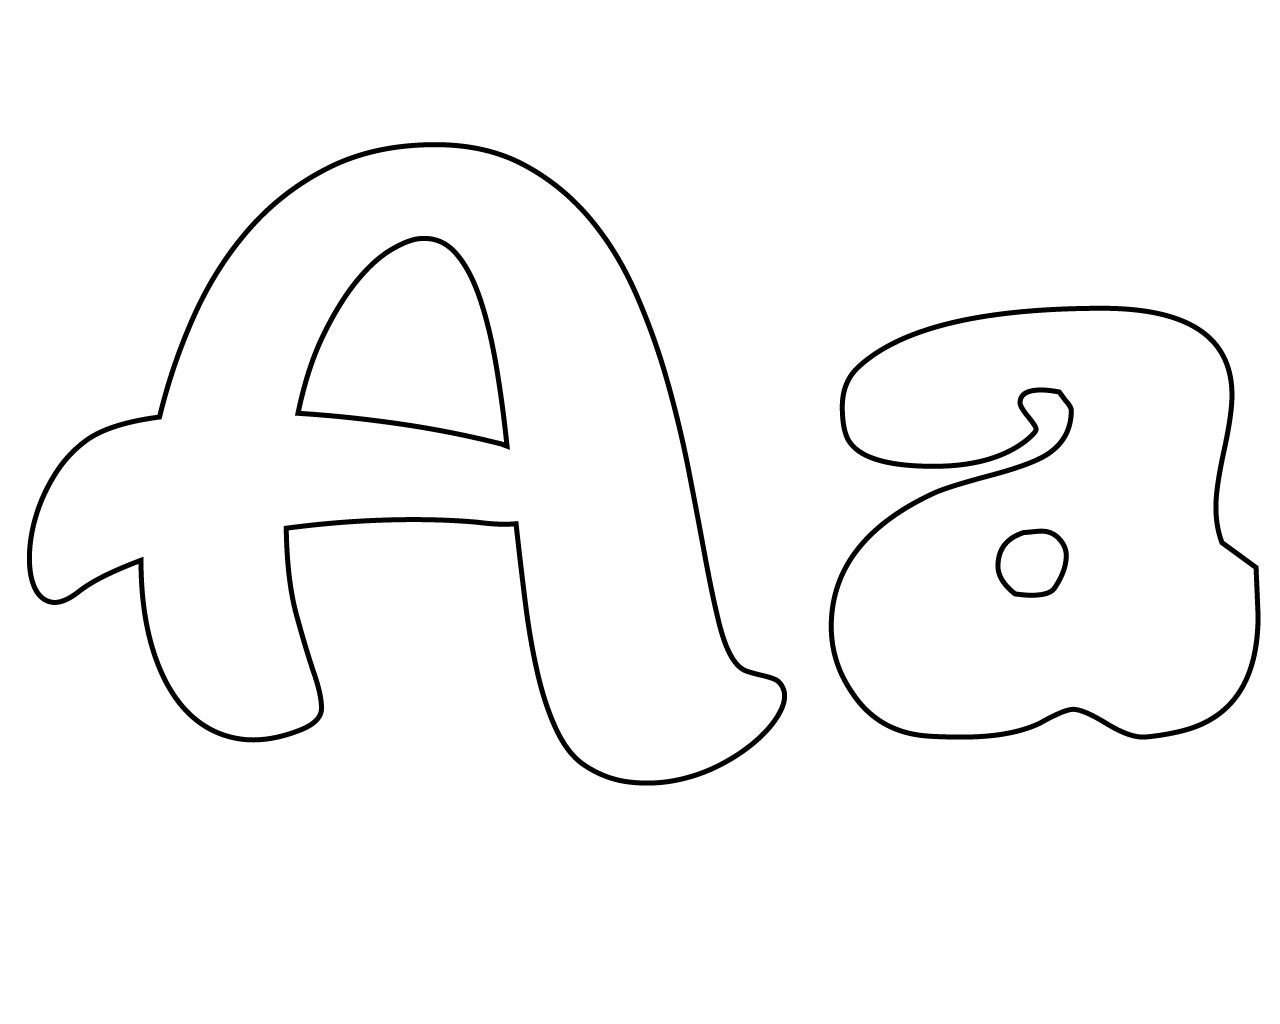 Letter A Coloring Pages To Print Letter A Coloring Pages Coloring Pages Letter B Coloring Pages